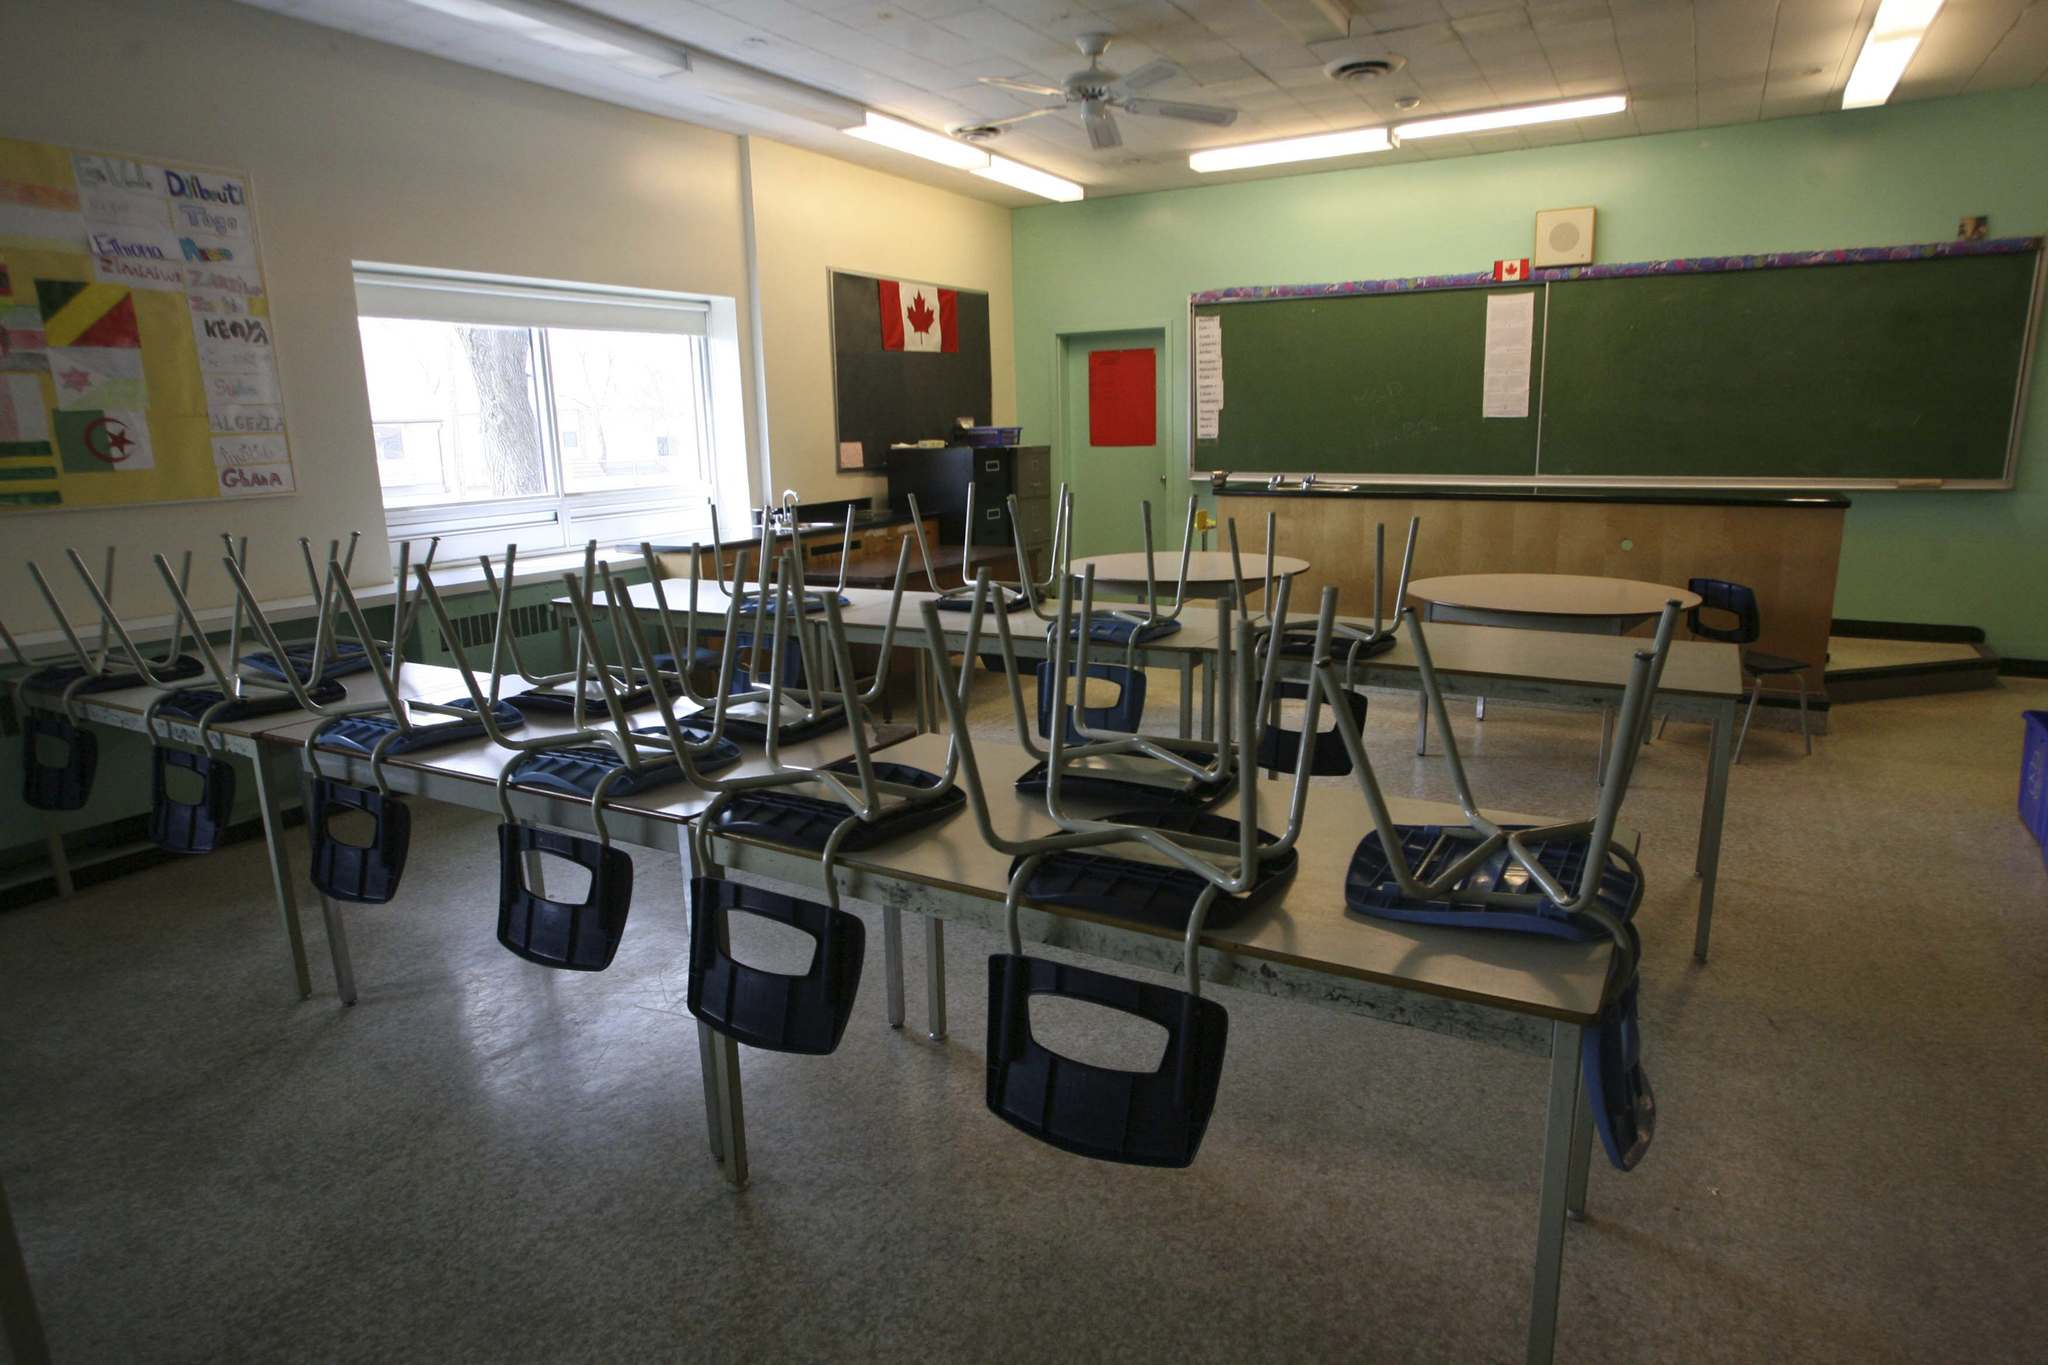 More than 3,200 parents from all corners of the province have signed an open letter to Premier Brian Pallister and Education Minister Cliff Cullen in opposition to the Education Modernization Act. (Mike Deal / Winnipeg Free Press files)</p>